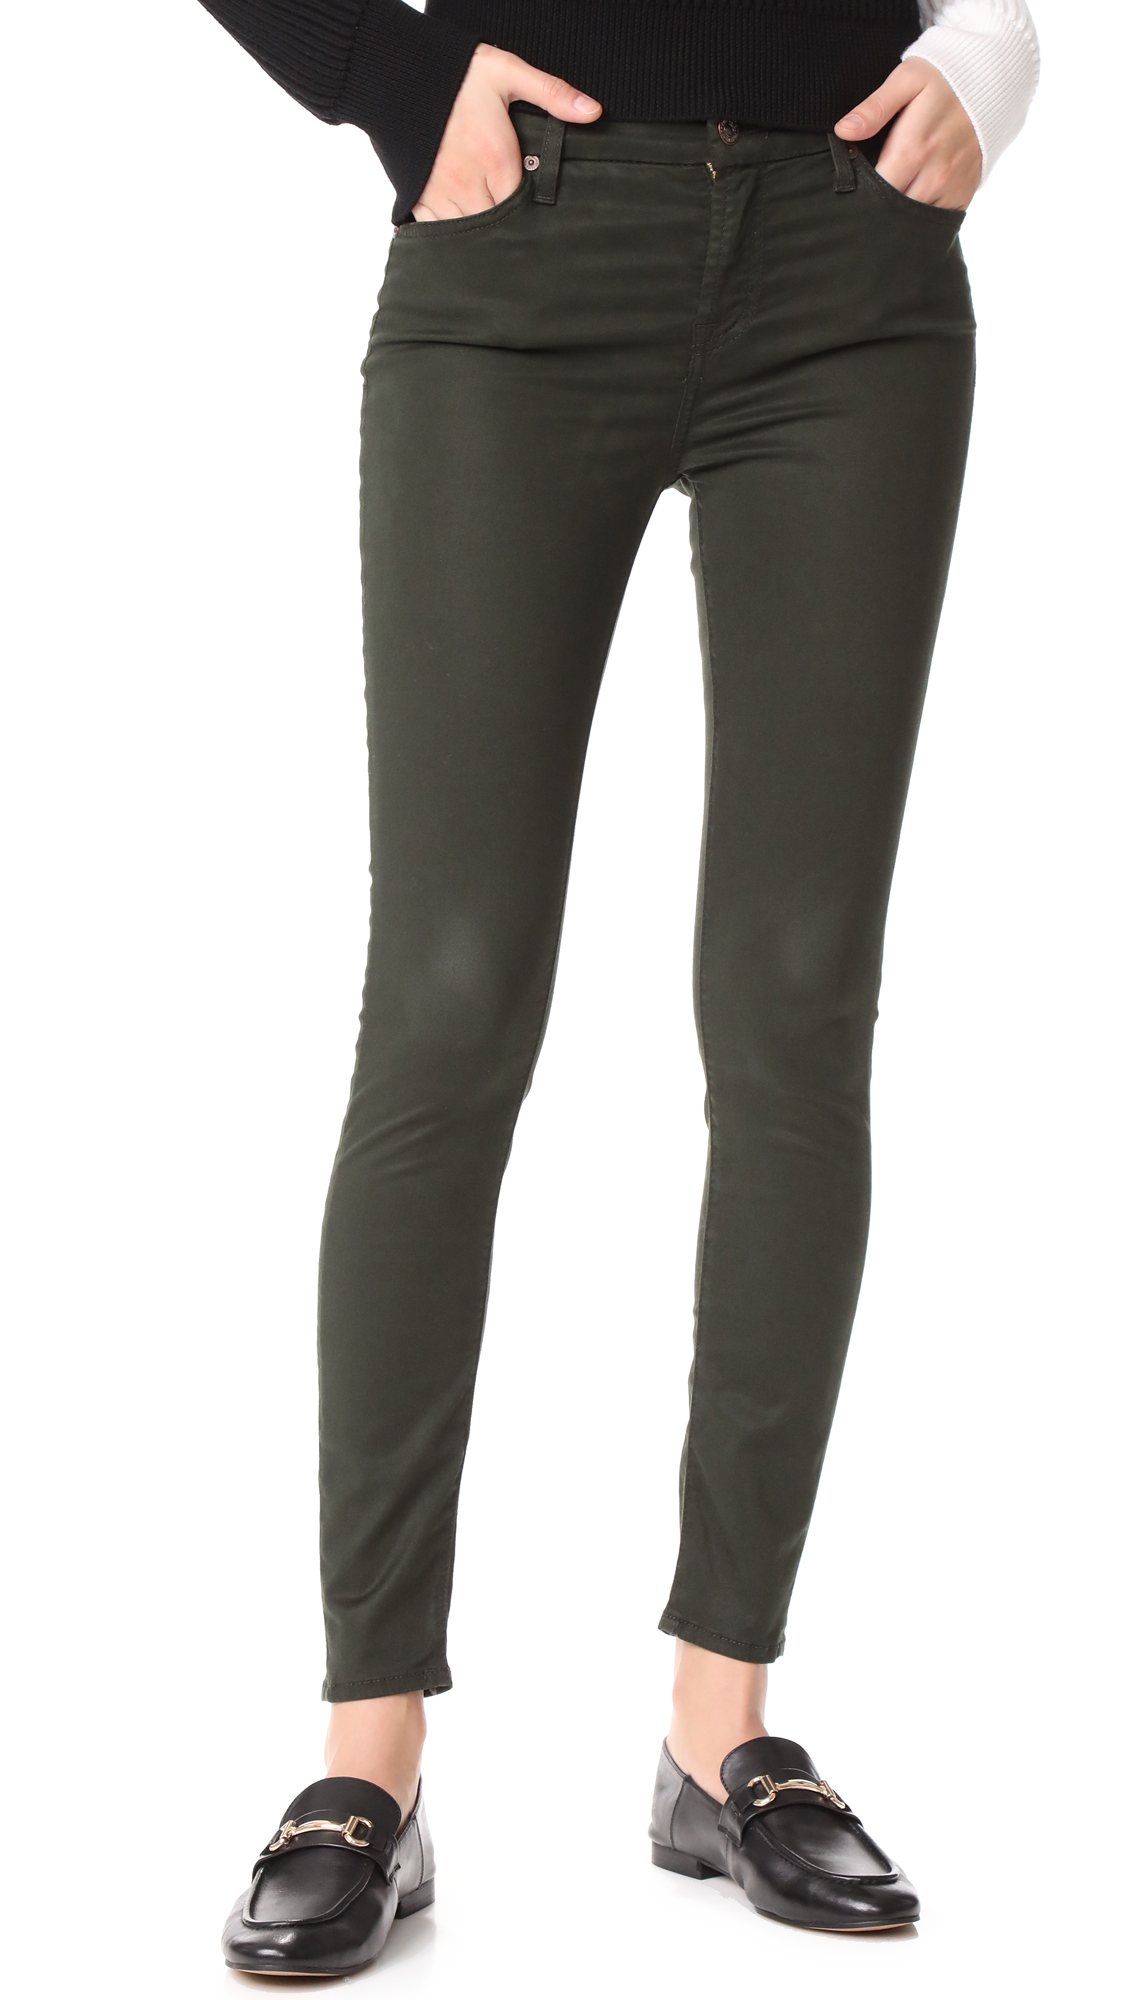 7 For All Mankind The B(air) Ankle Skinny Jeans